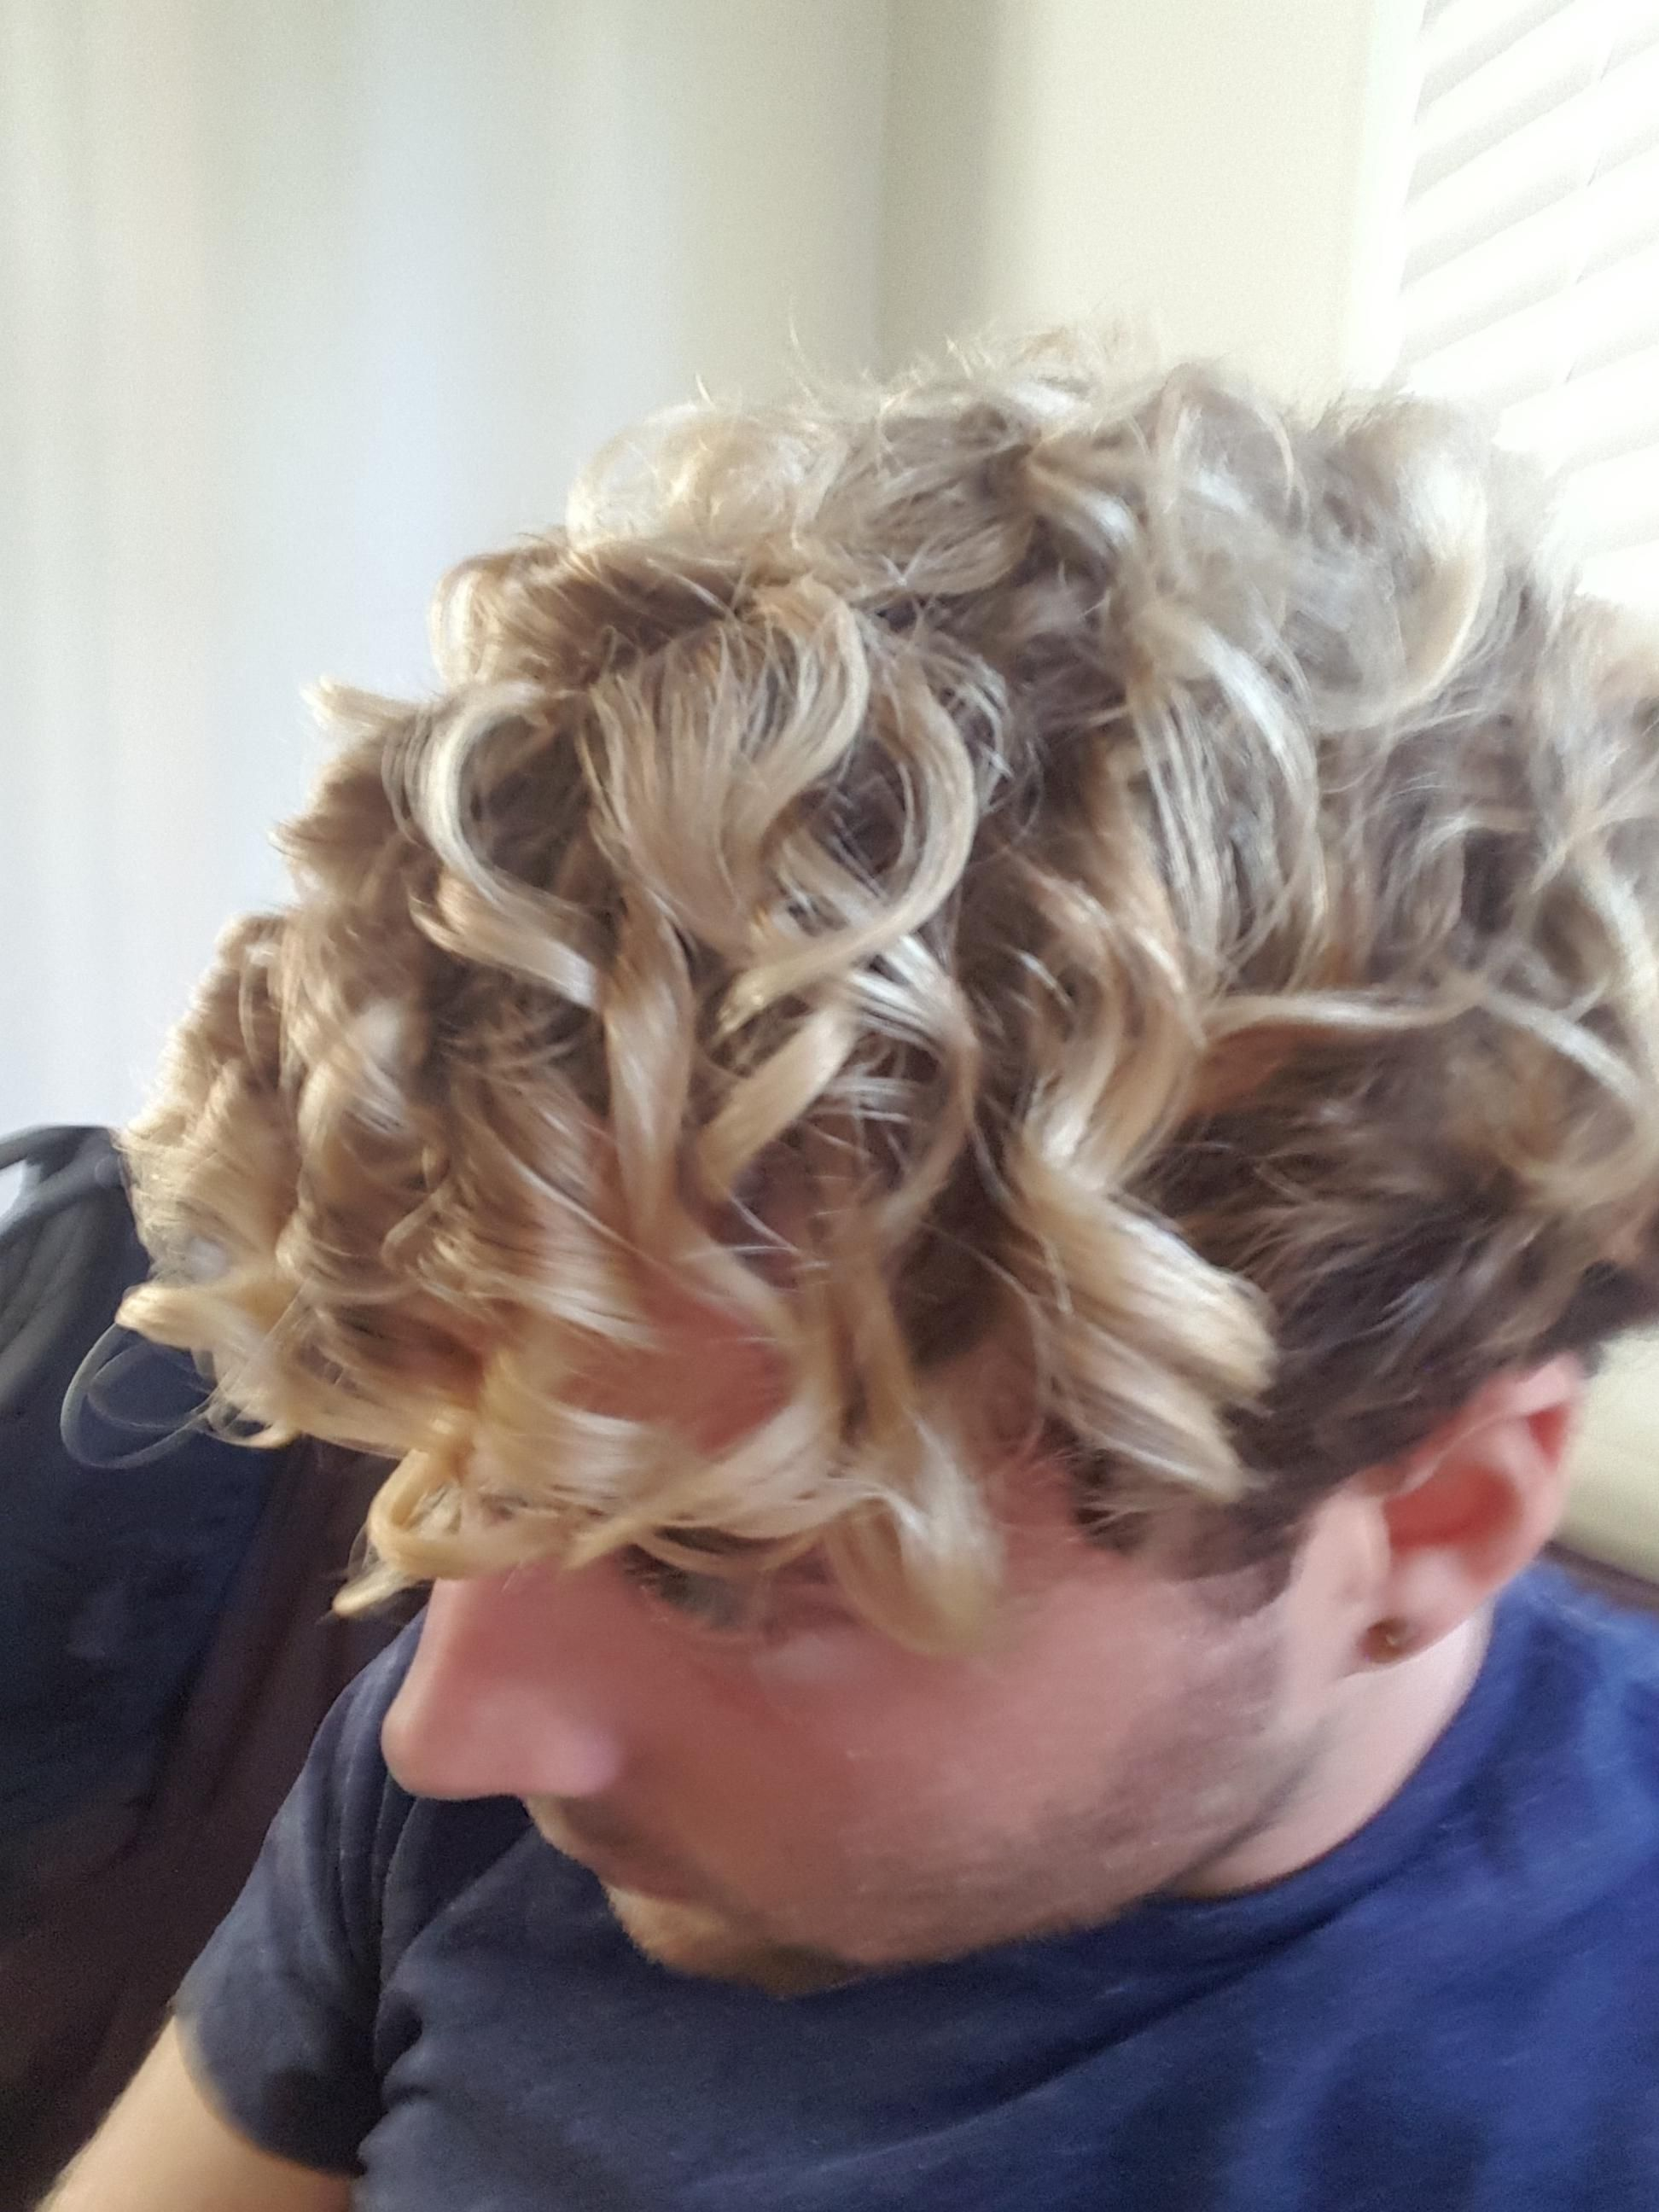 Men Highlights On Short Curly Hair Bleached Hair Men Curly Hair Men Highlights Curly Hair